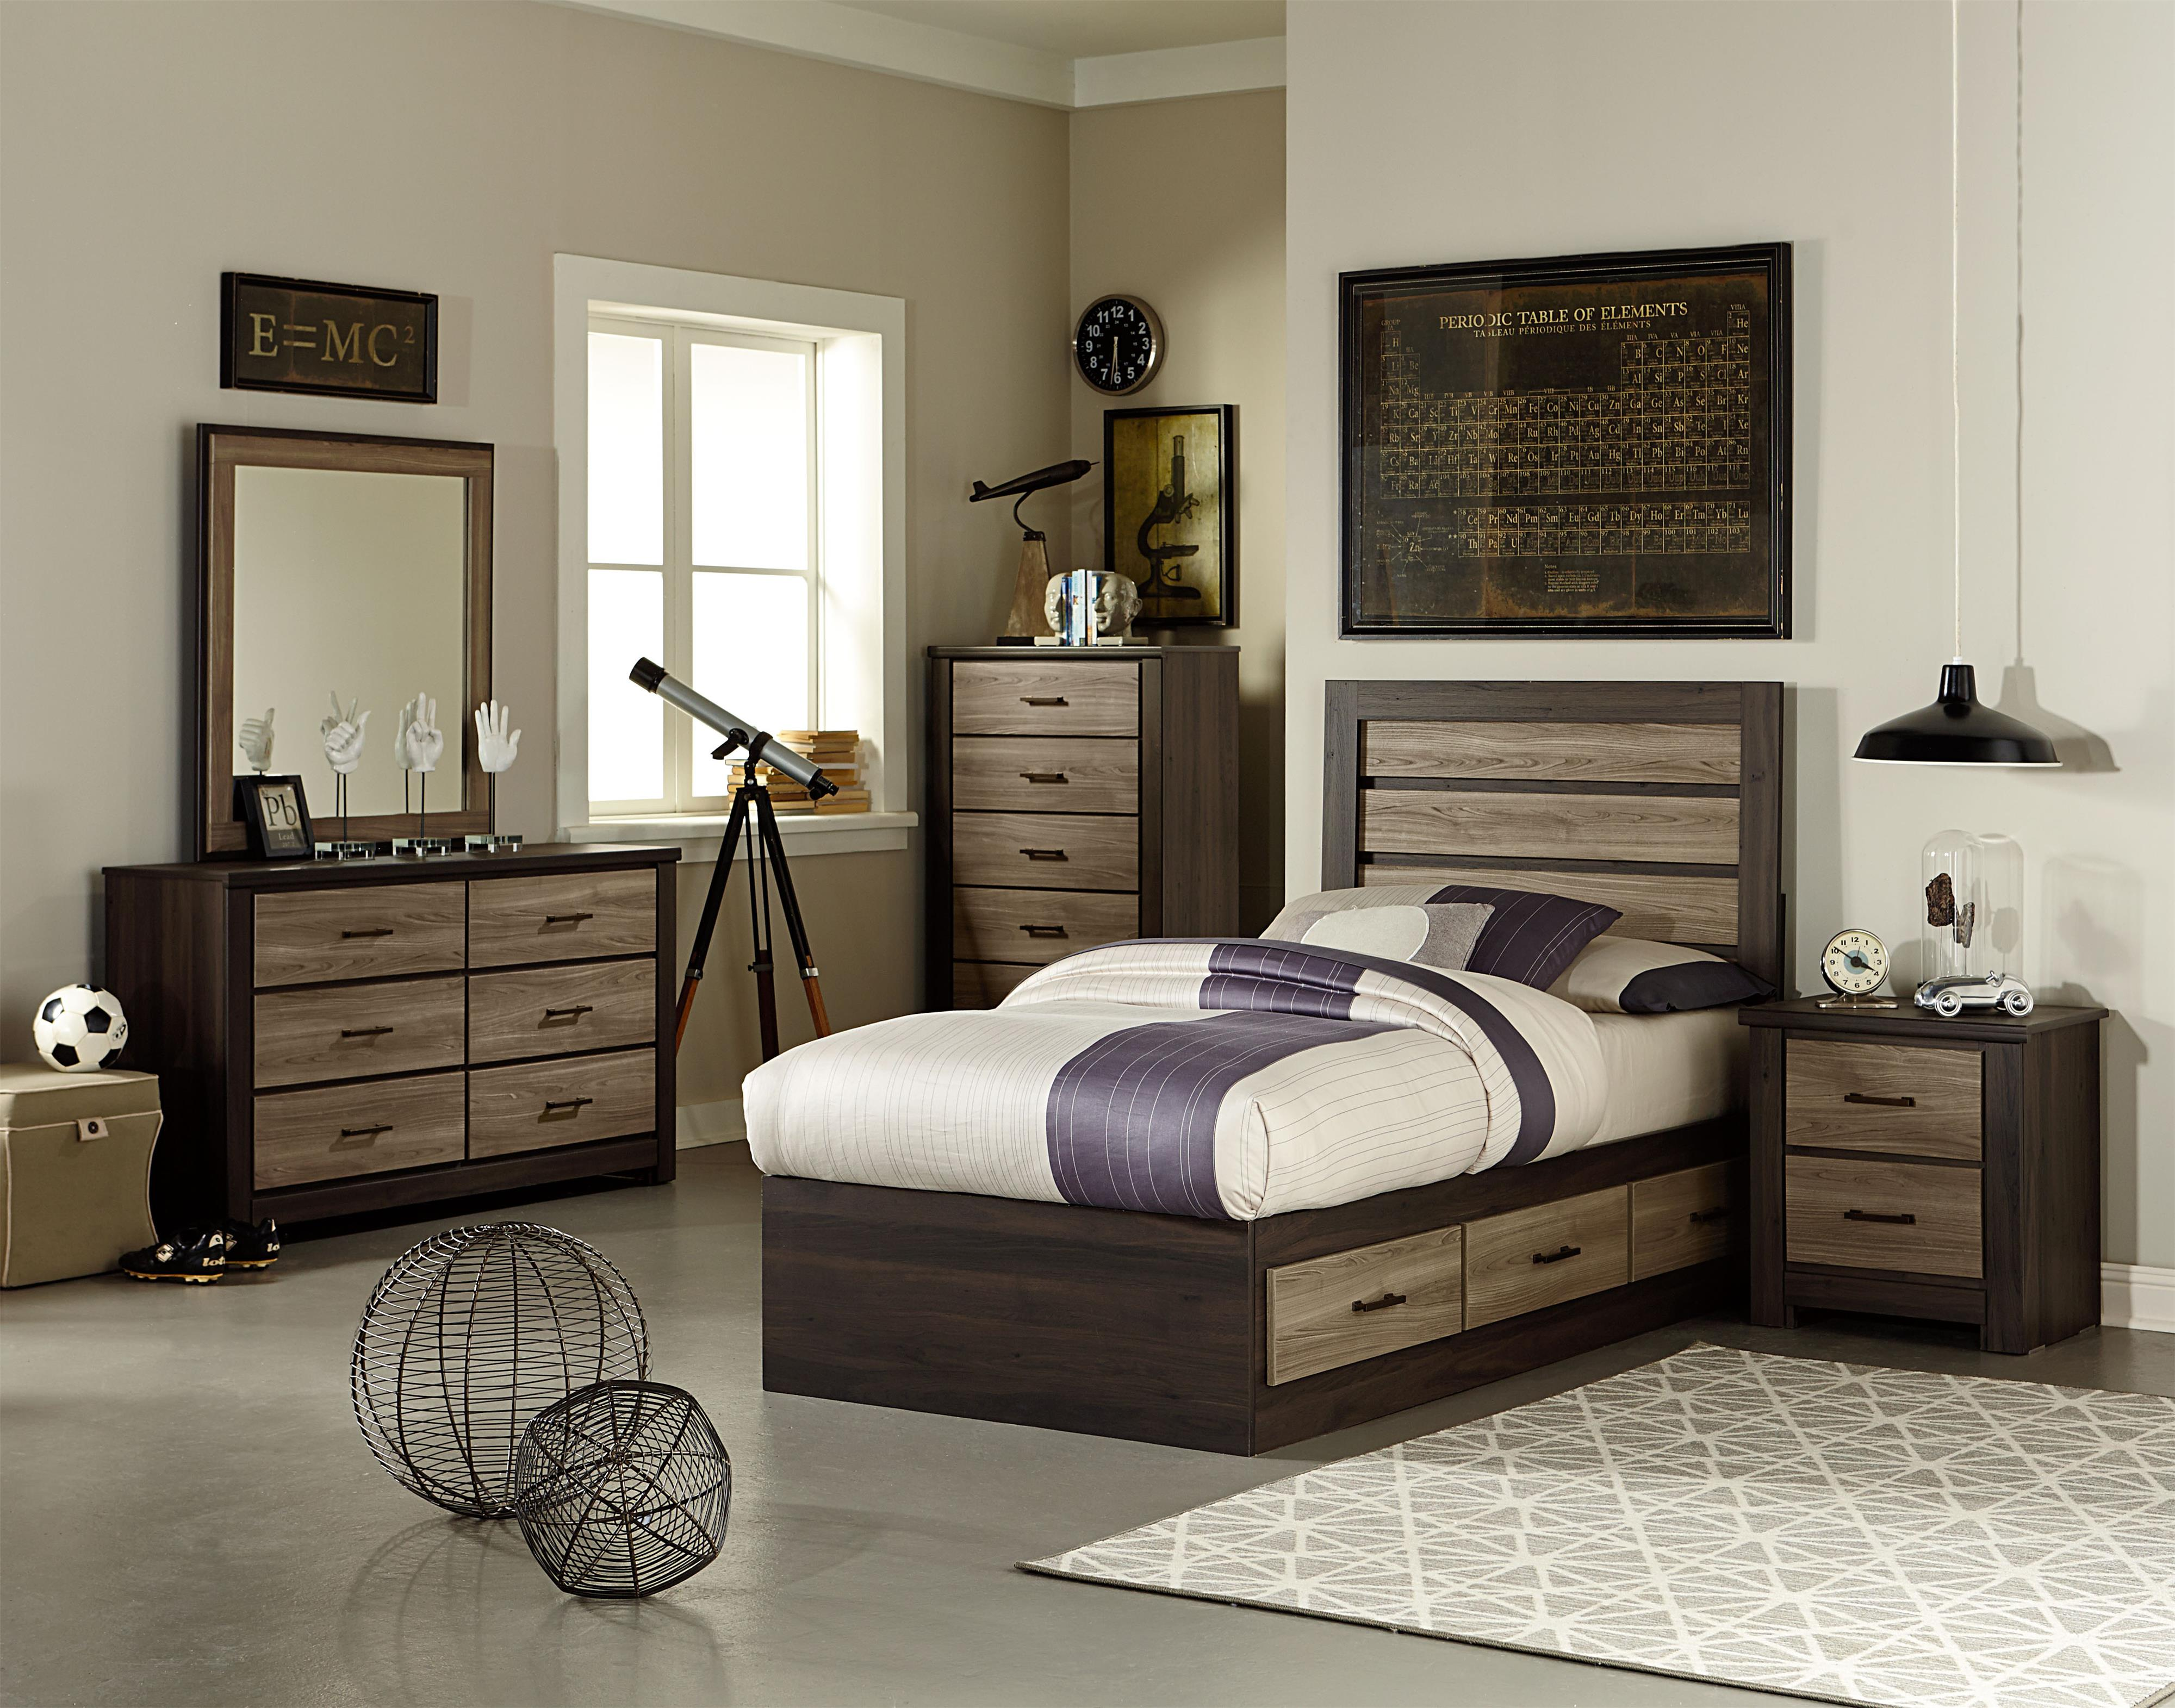 Standard Furniture Oakland Twin Bedroom Group - Item Number: 69700 T Bedroom Group 1